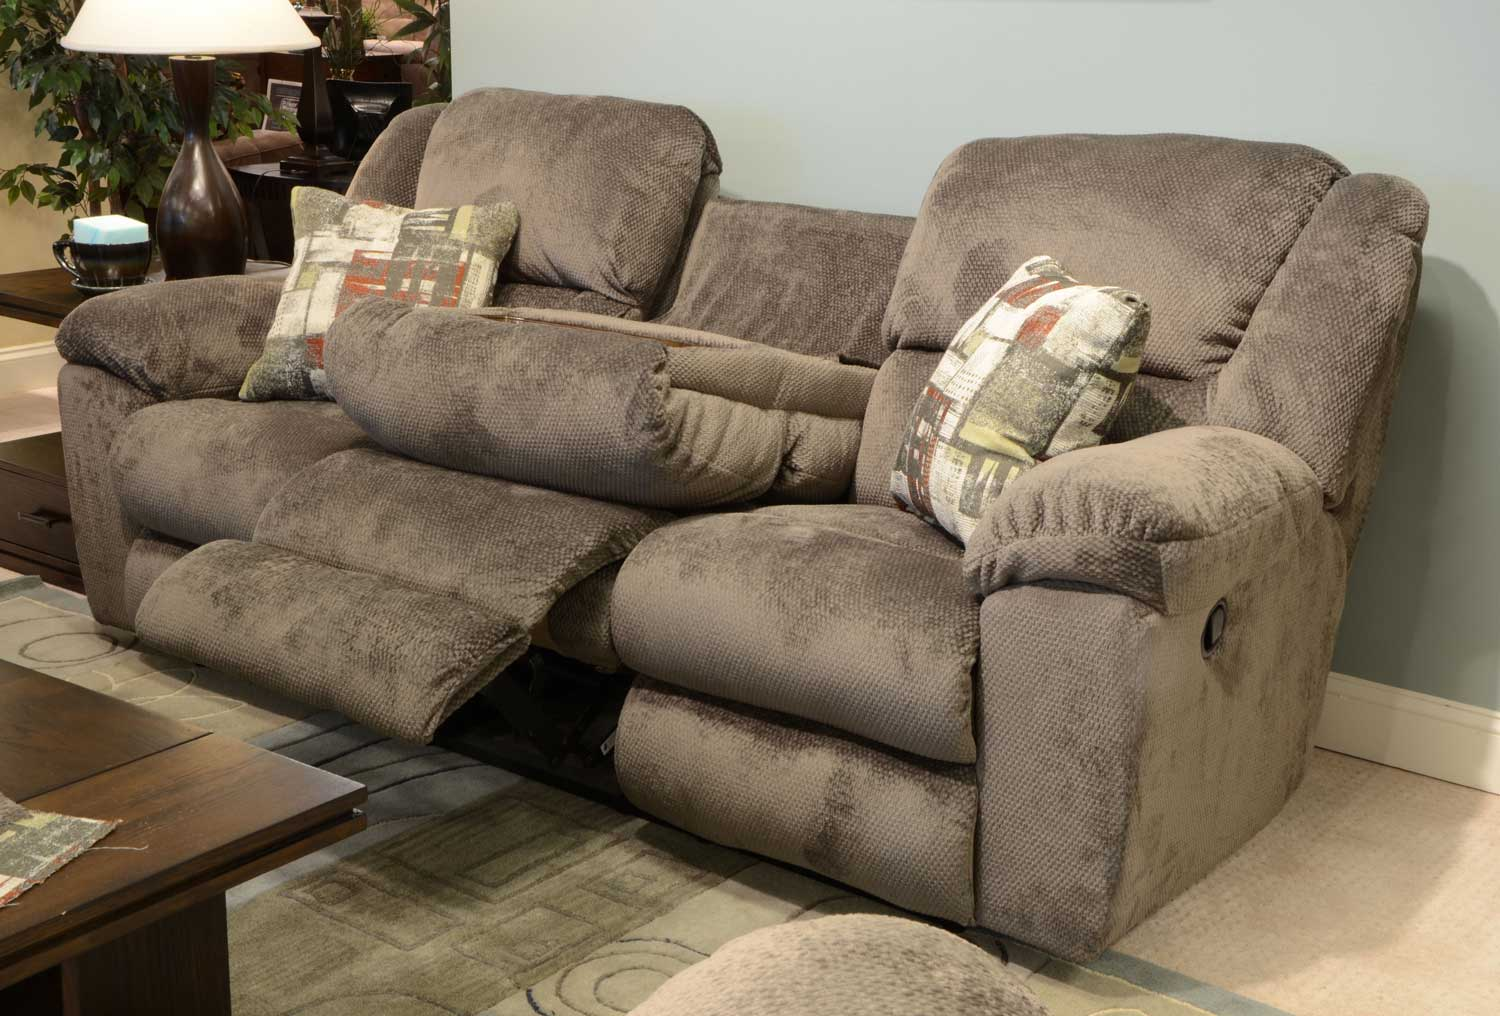 Catnapper Transformer Ultimate Sofa With 3 Recliners And 1 Drop Down Table Seal Cn 19445 Seal